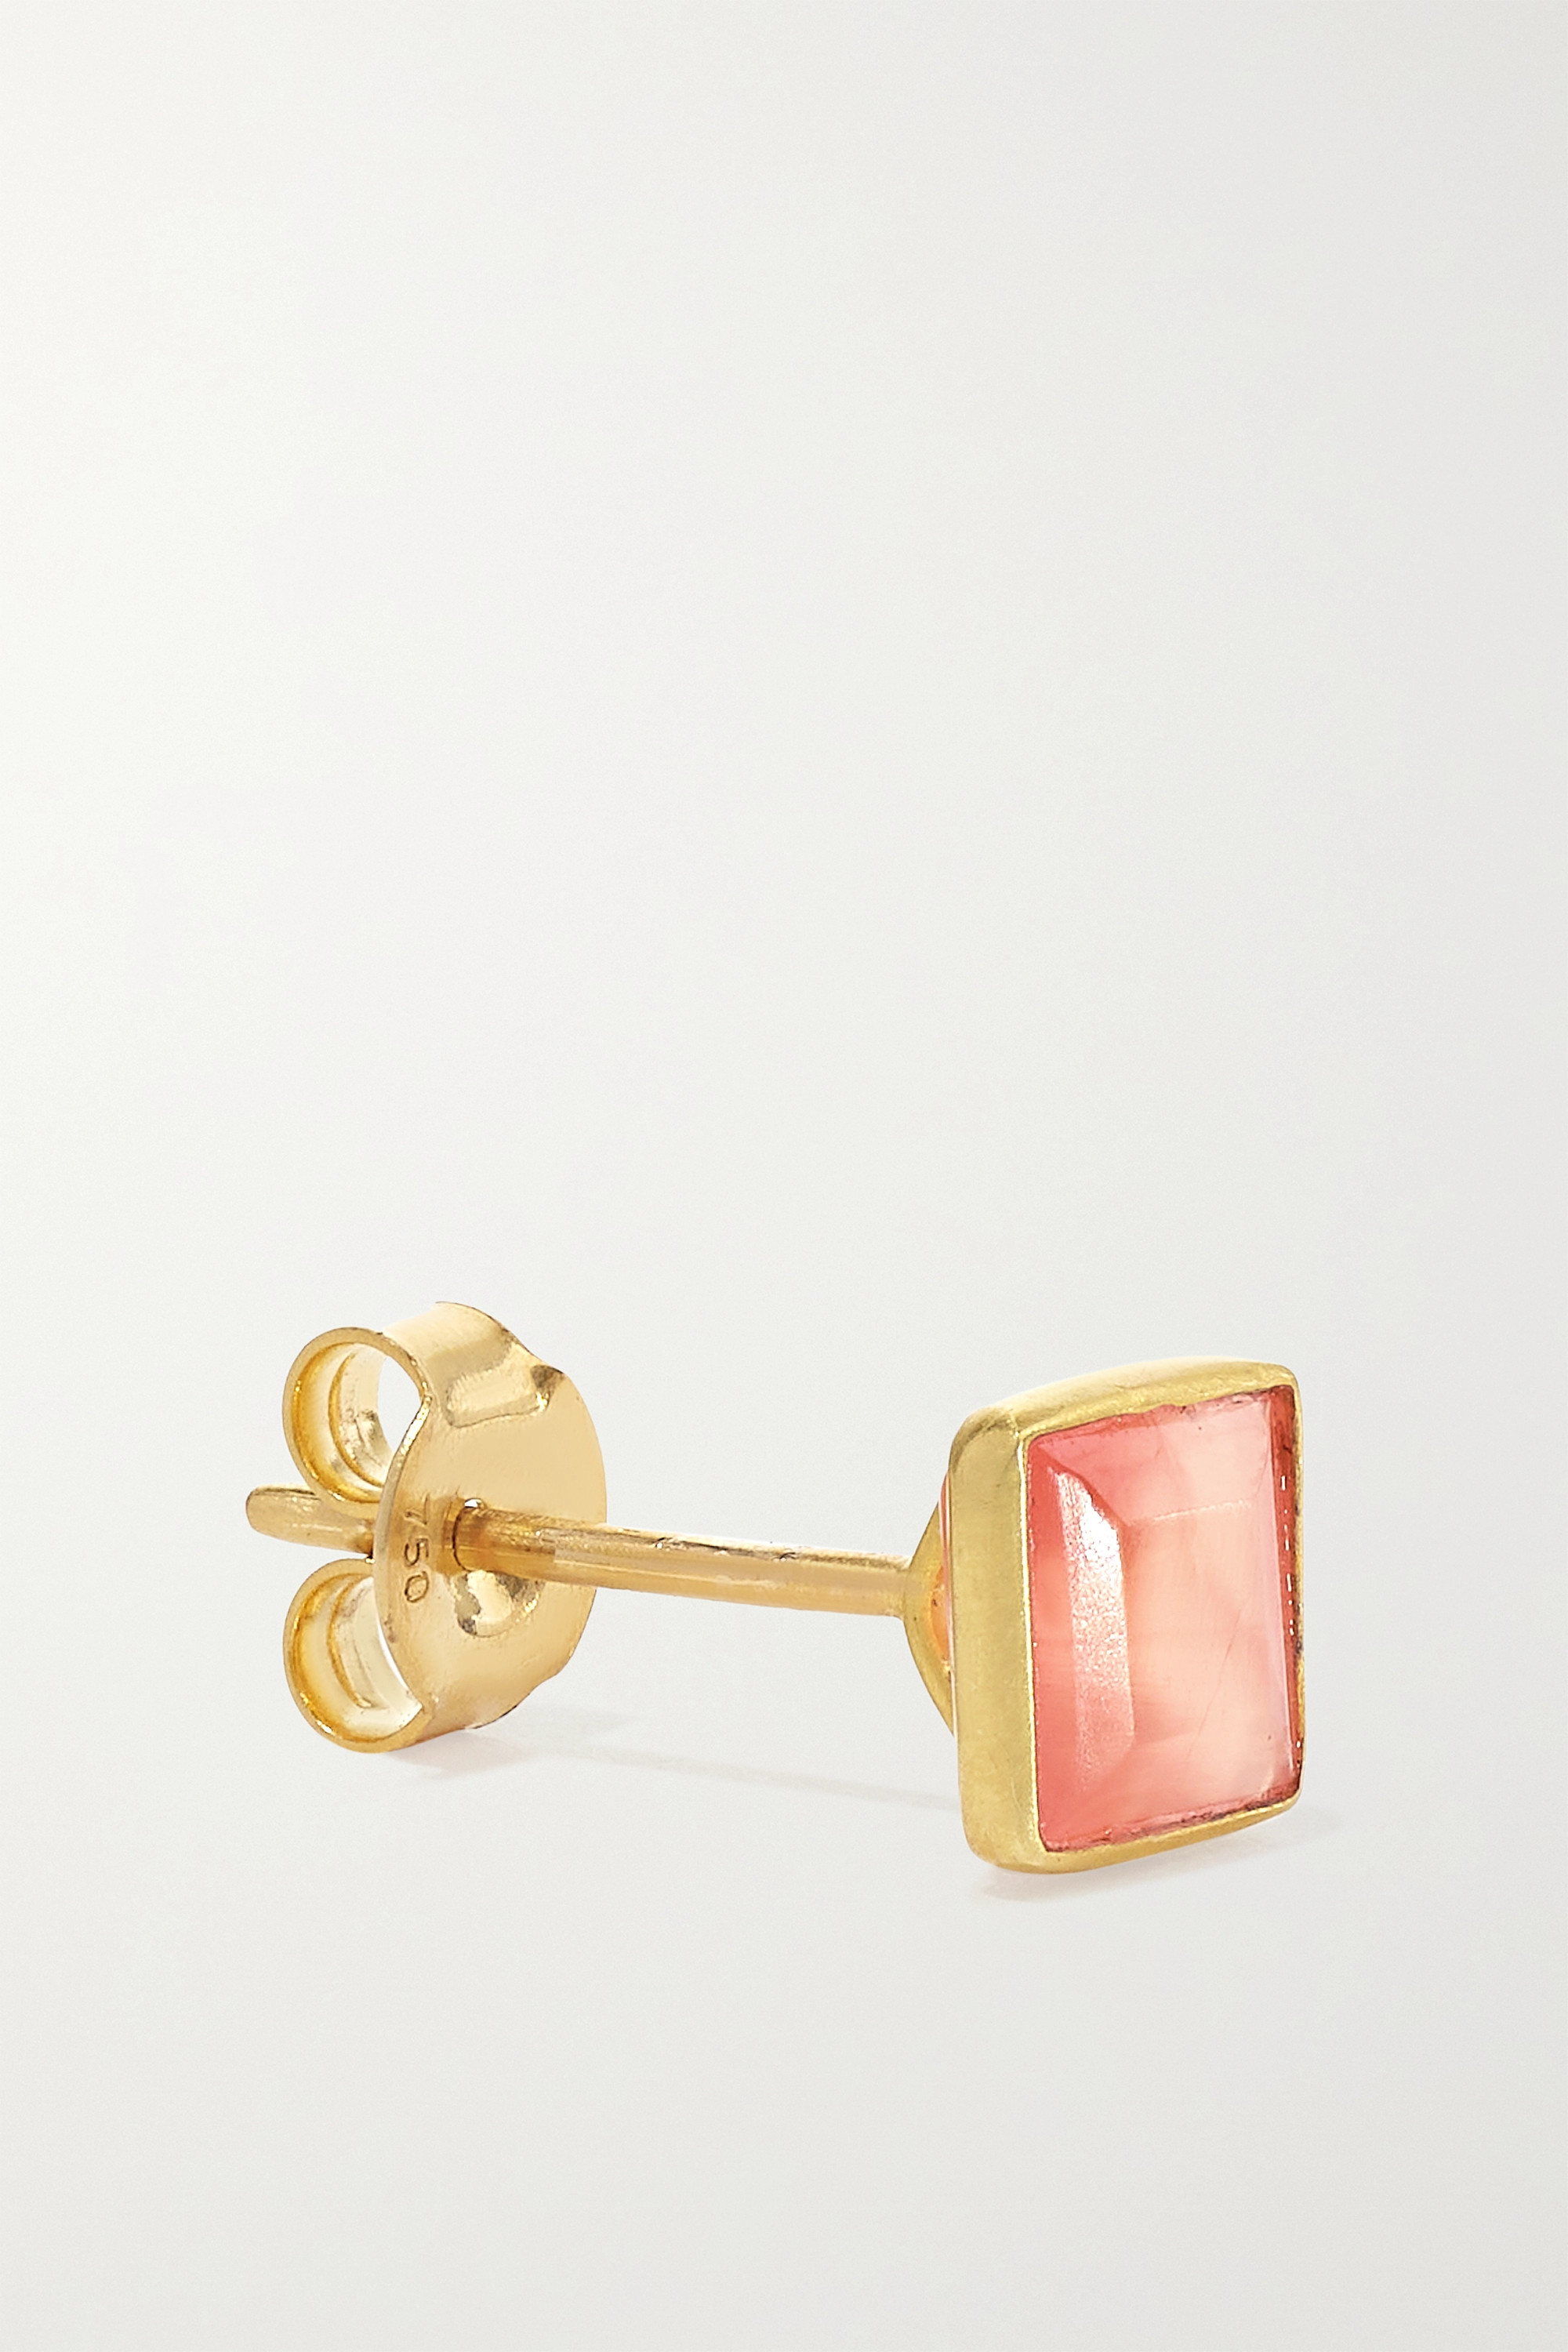 PIPPA SMALL 18-karat gold rhodochrosite earrings